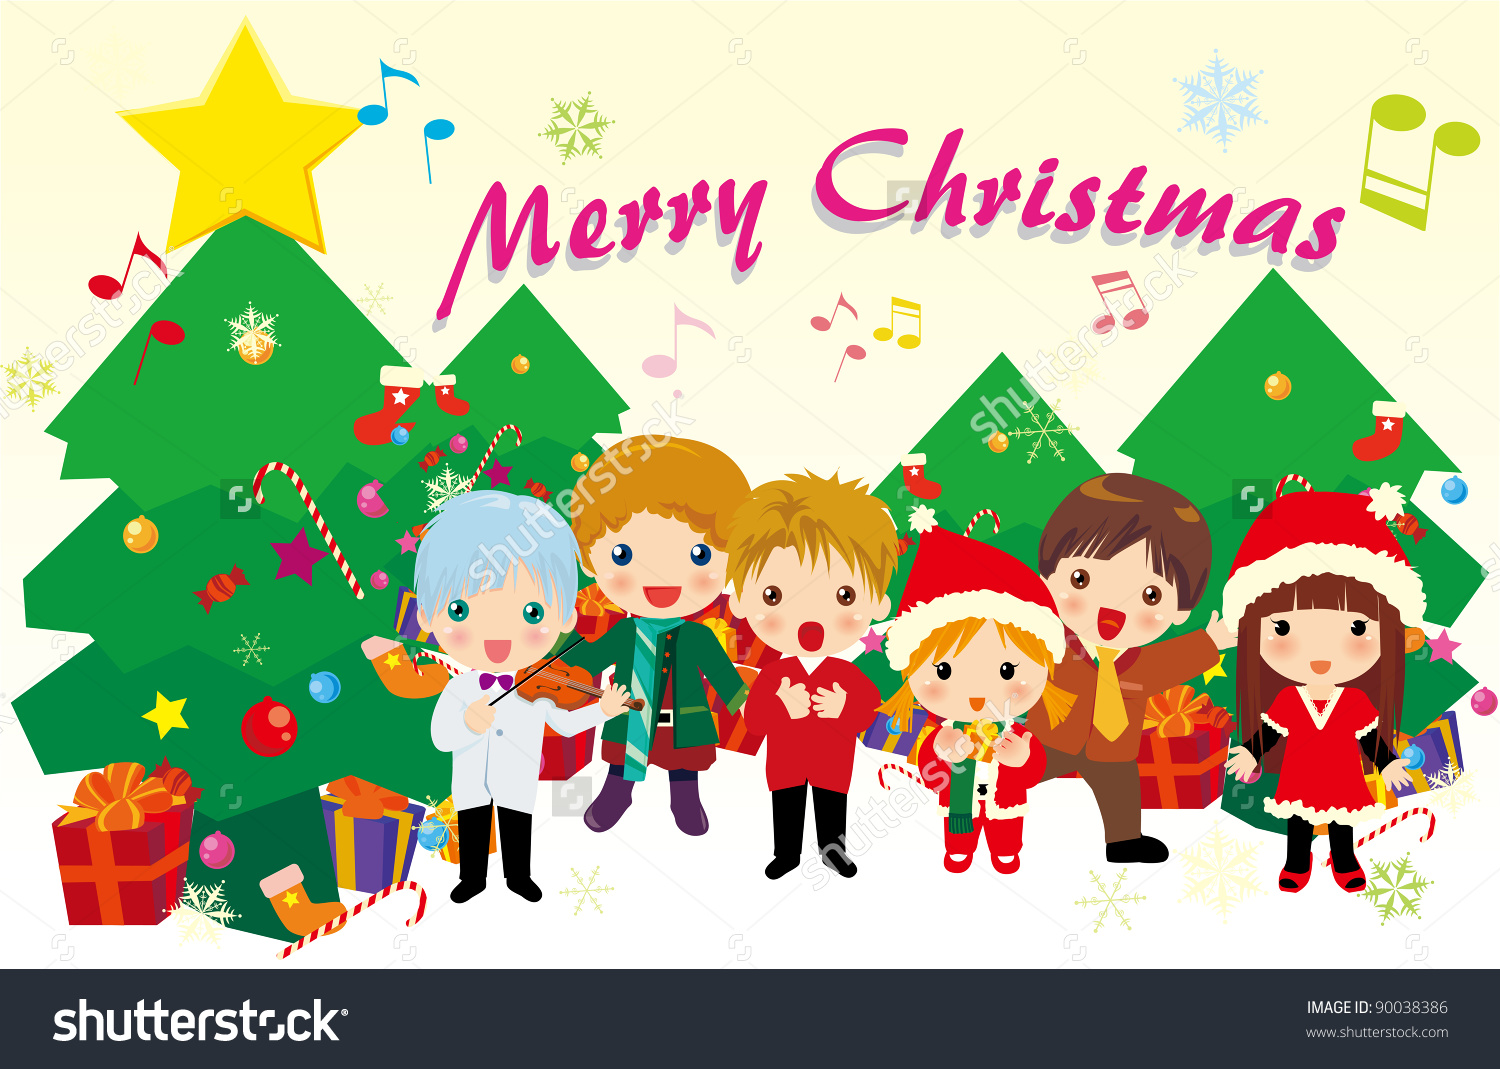 Trees singing carols free. Caroling clipart christmas